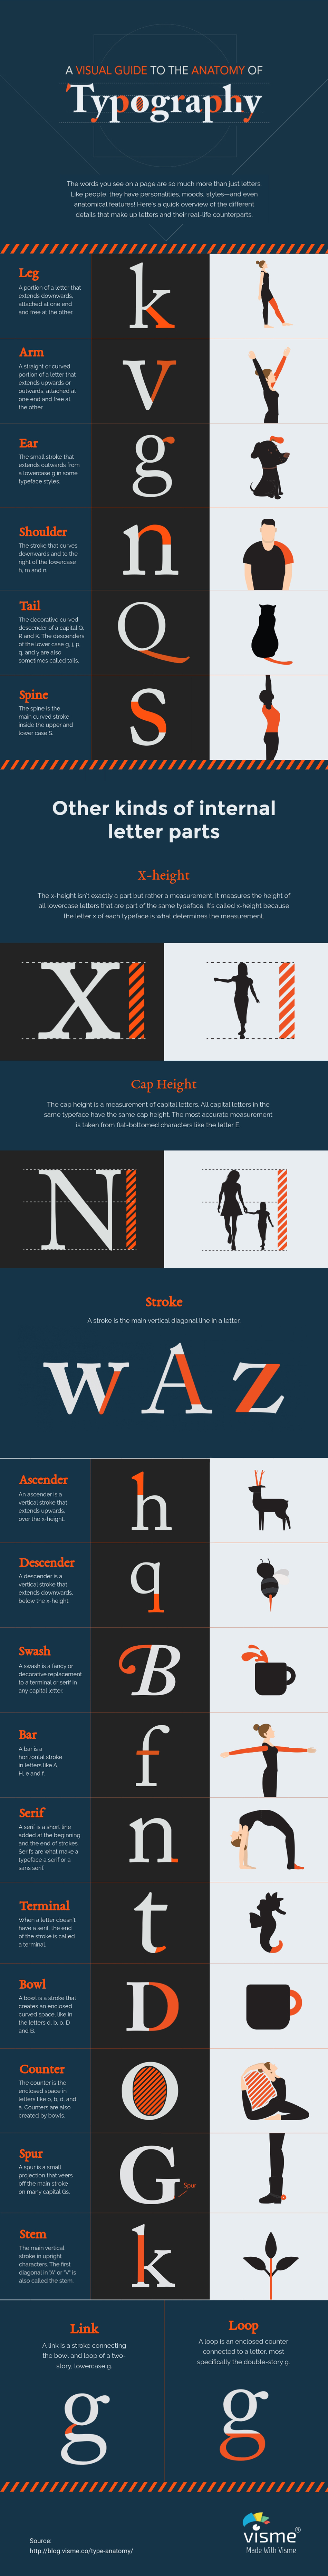 Type Anatomy A-Visual-Guide-to-the-Anatomy-of-Typography-Infographic